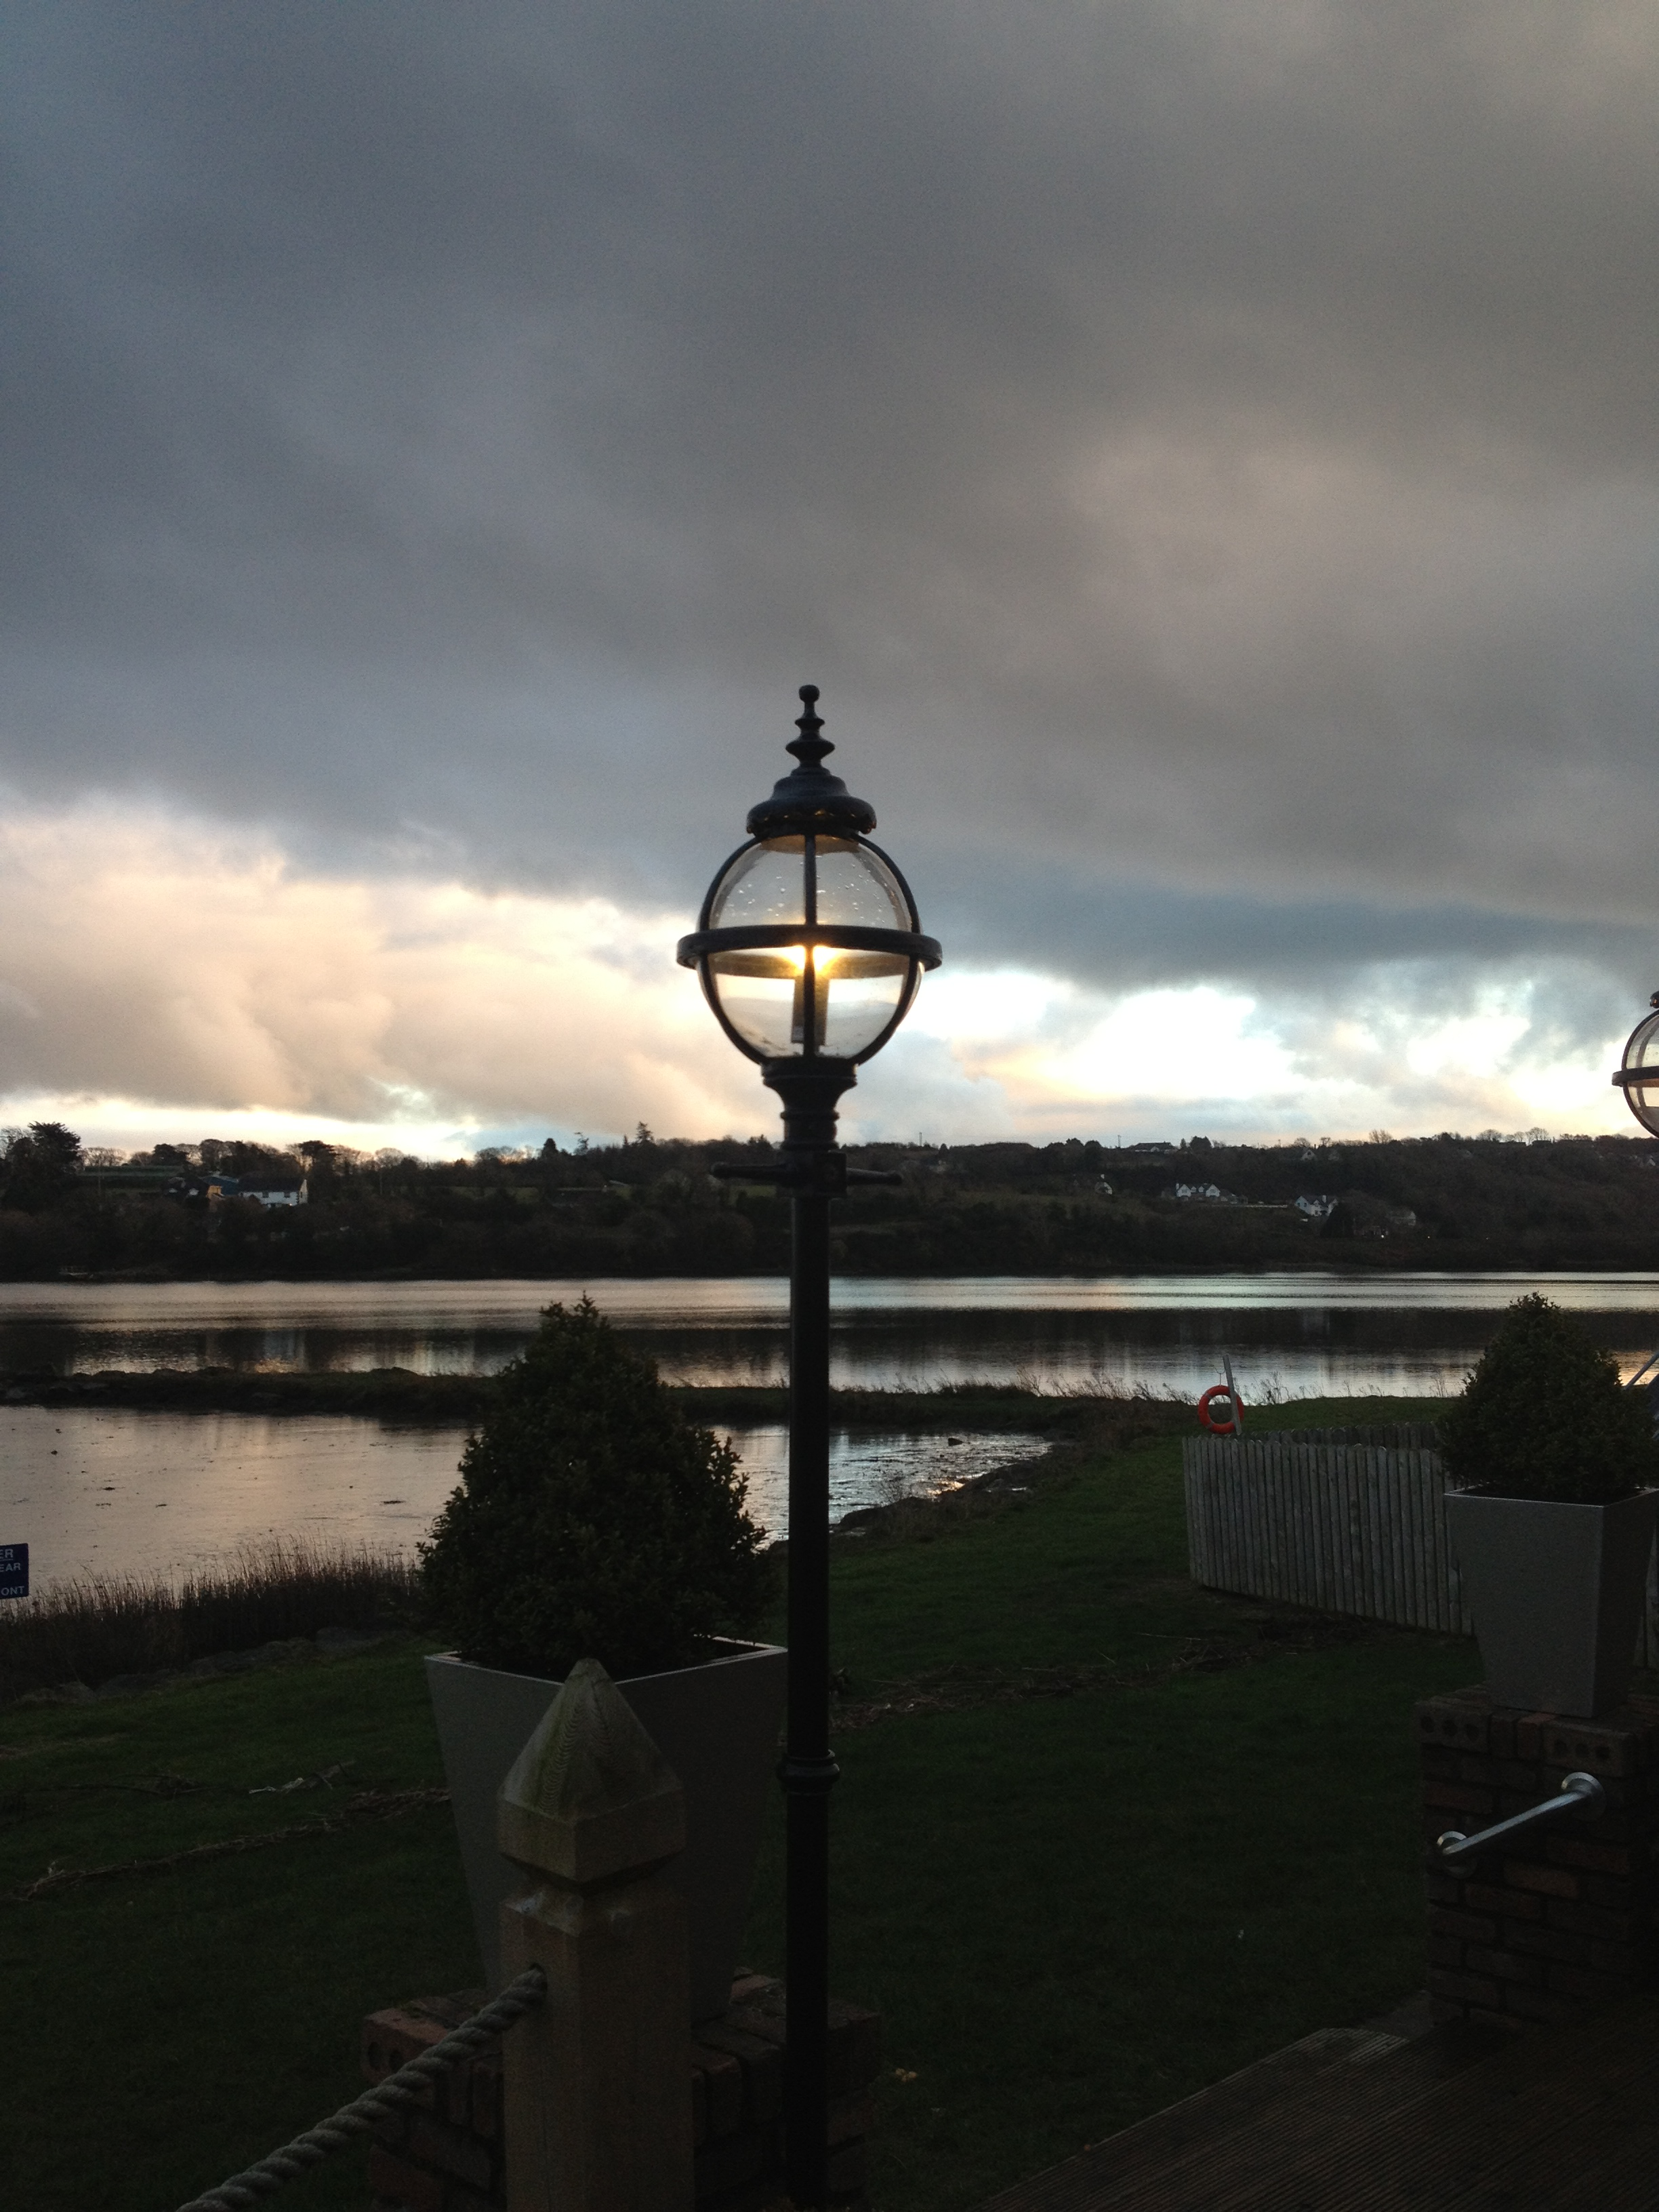 """8\'9\"""" Heritage Lamp Standard at Ferrycarrig Hotel, Wexford"""